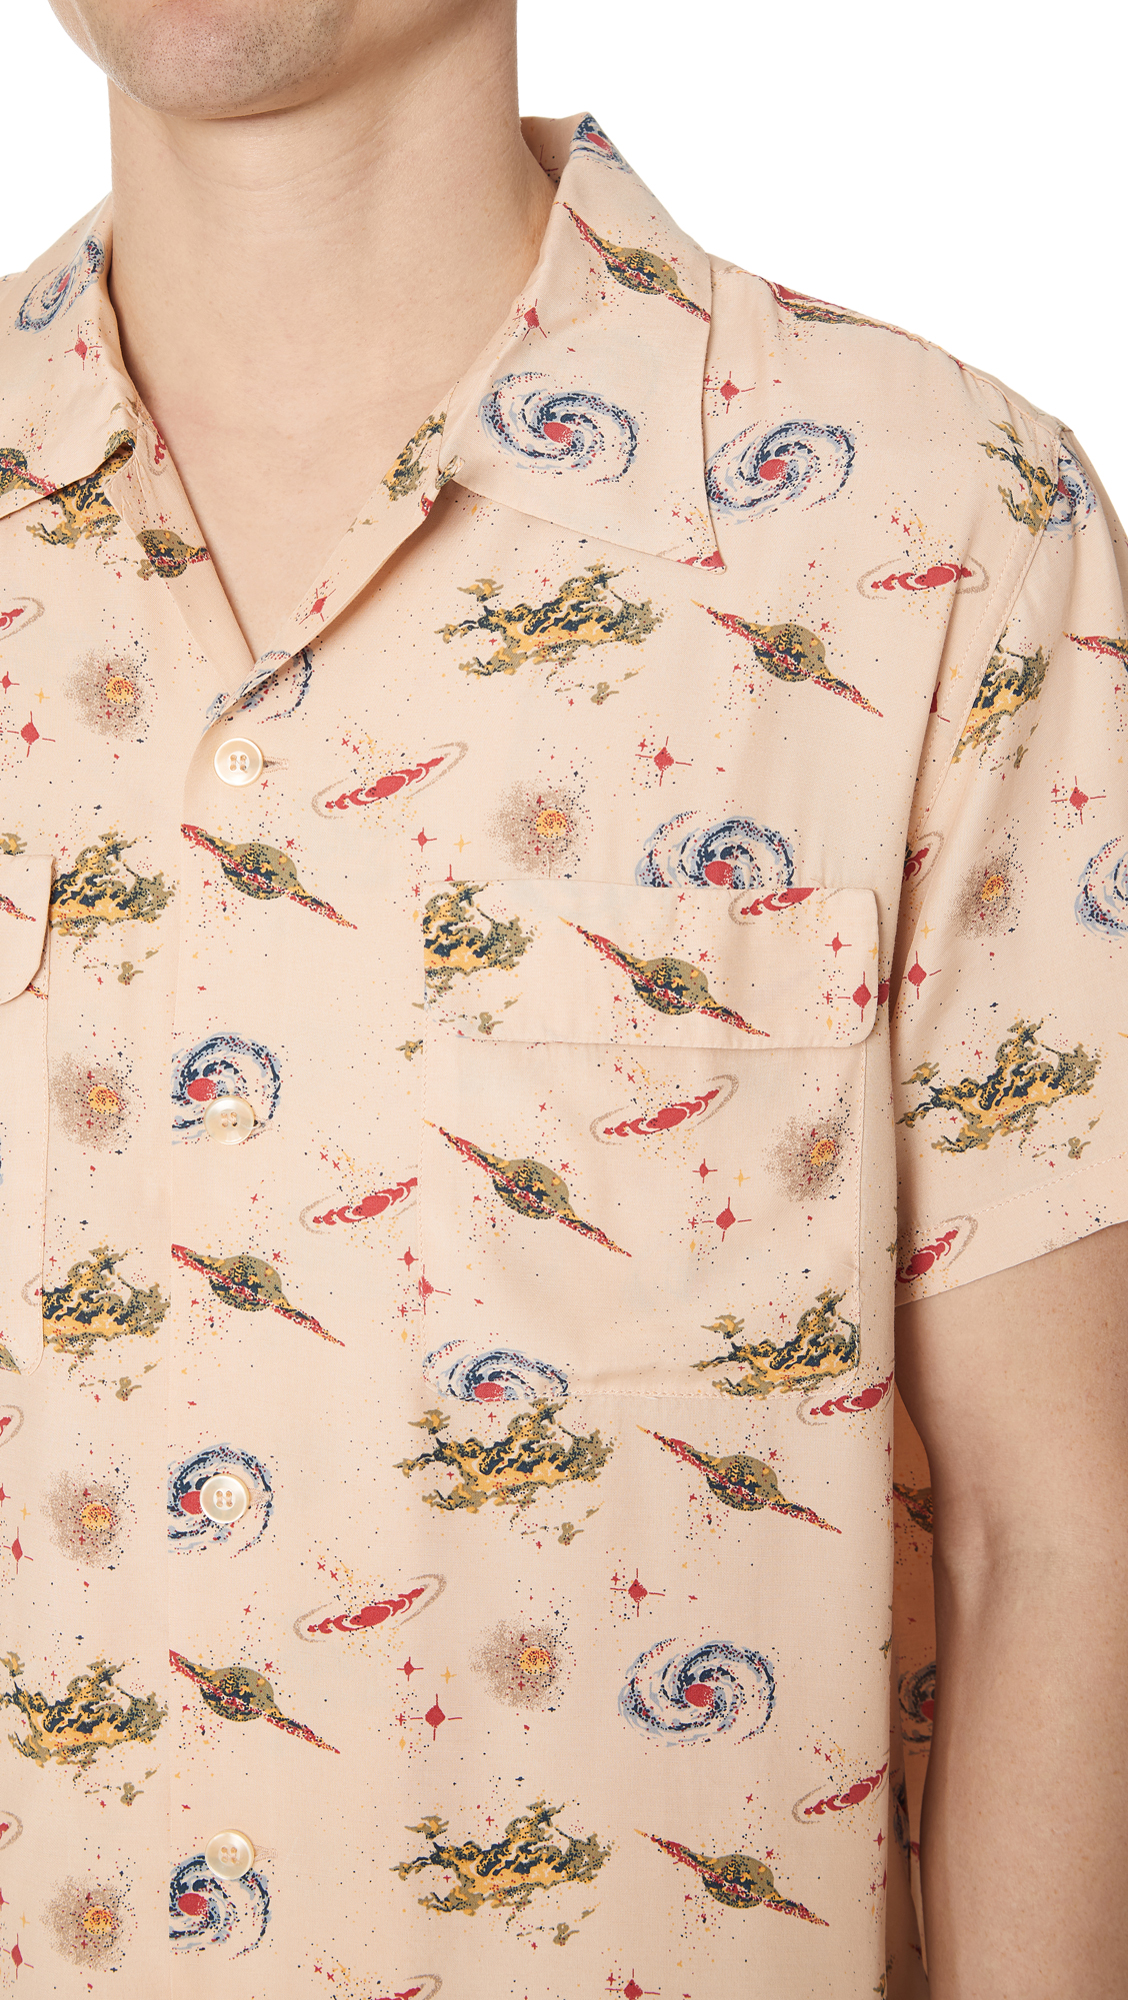 48c378d1 Levis Vintage Clothing Hawaiian Shirt - DREAMWORKS